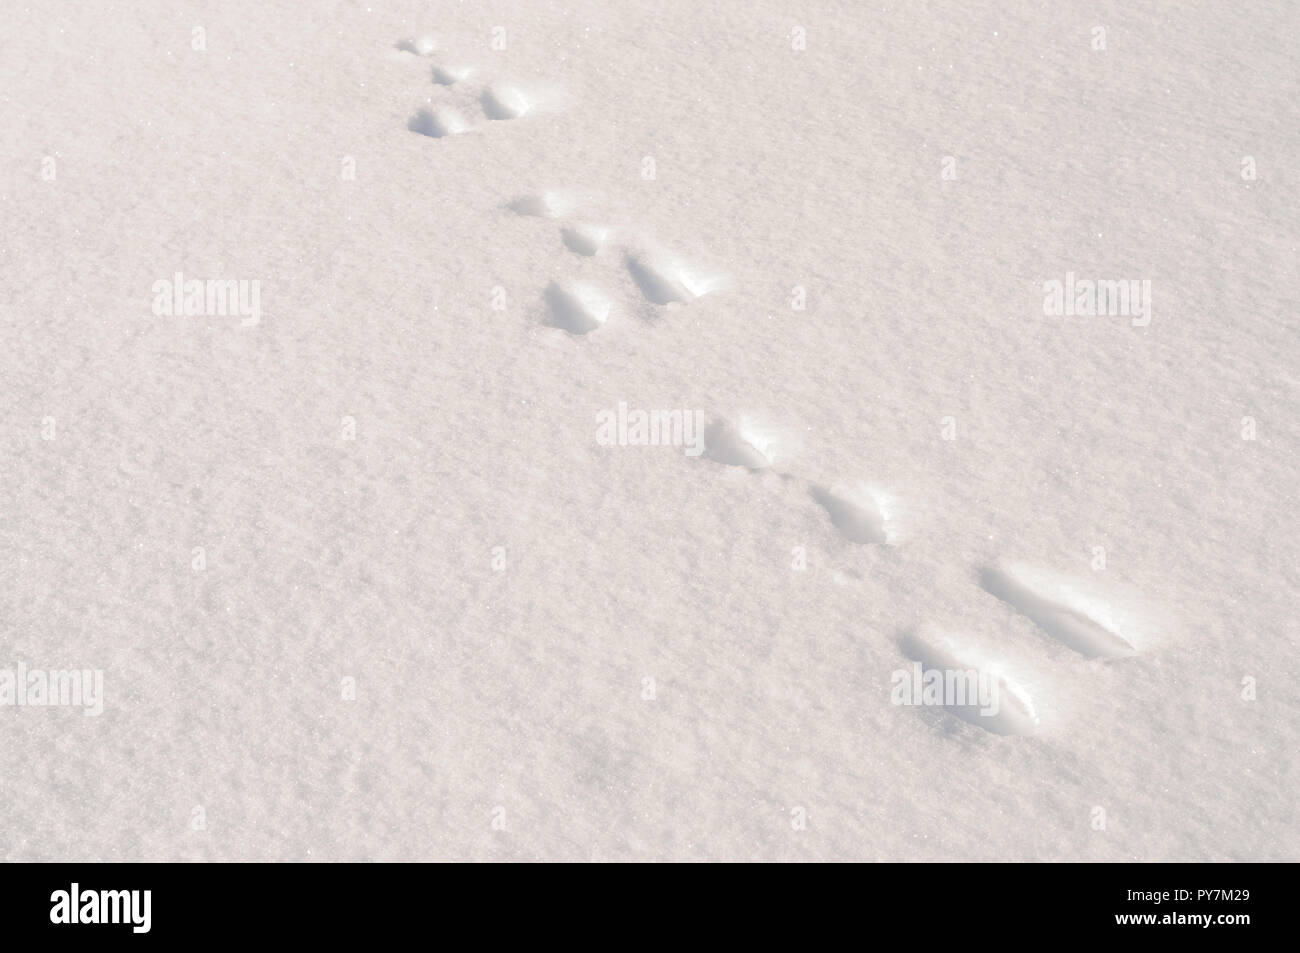 Hare tracks in snow - Stock Image